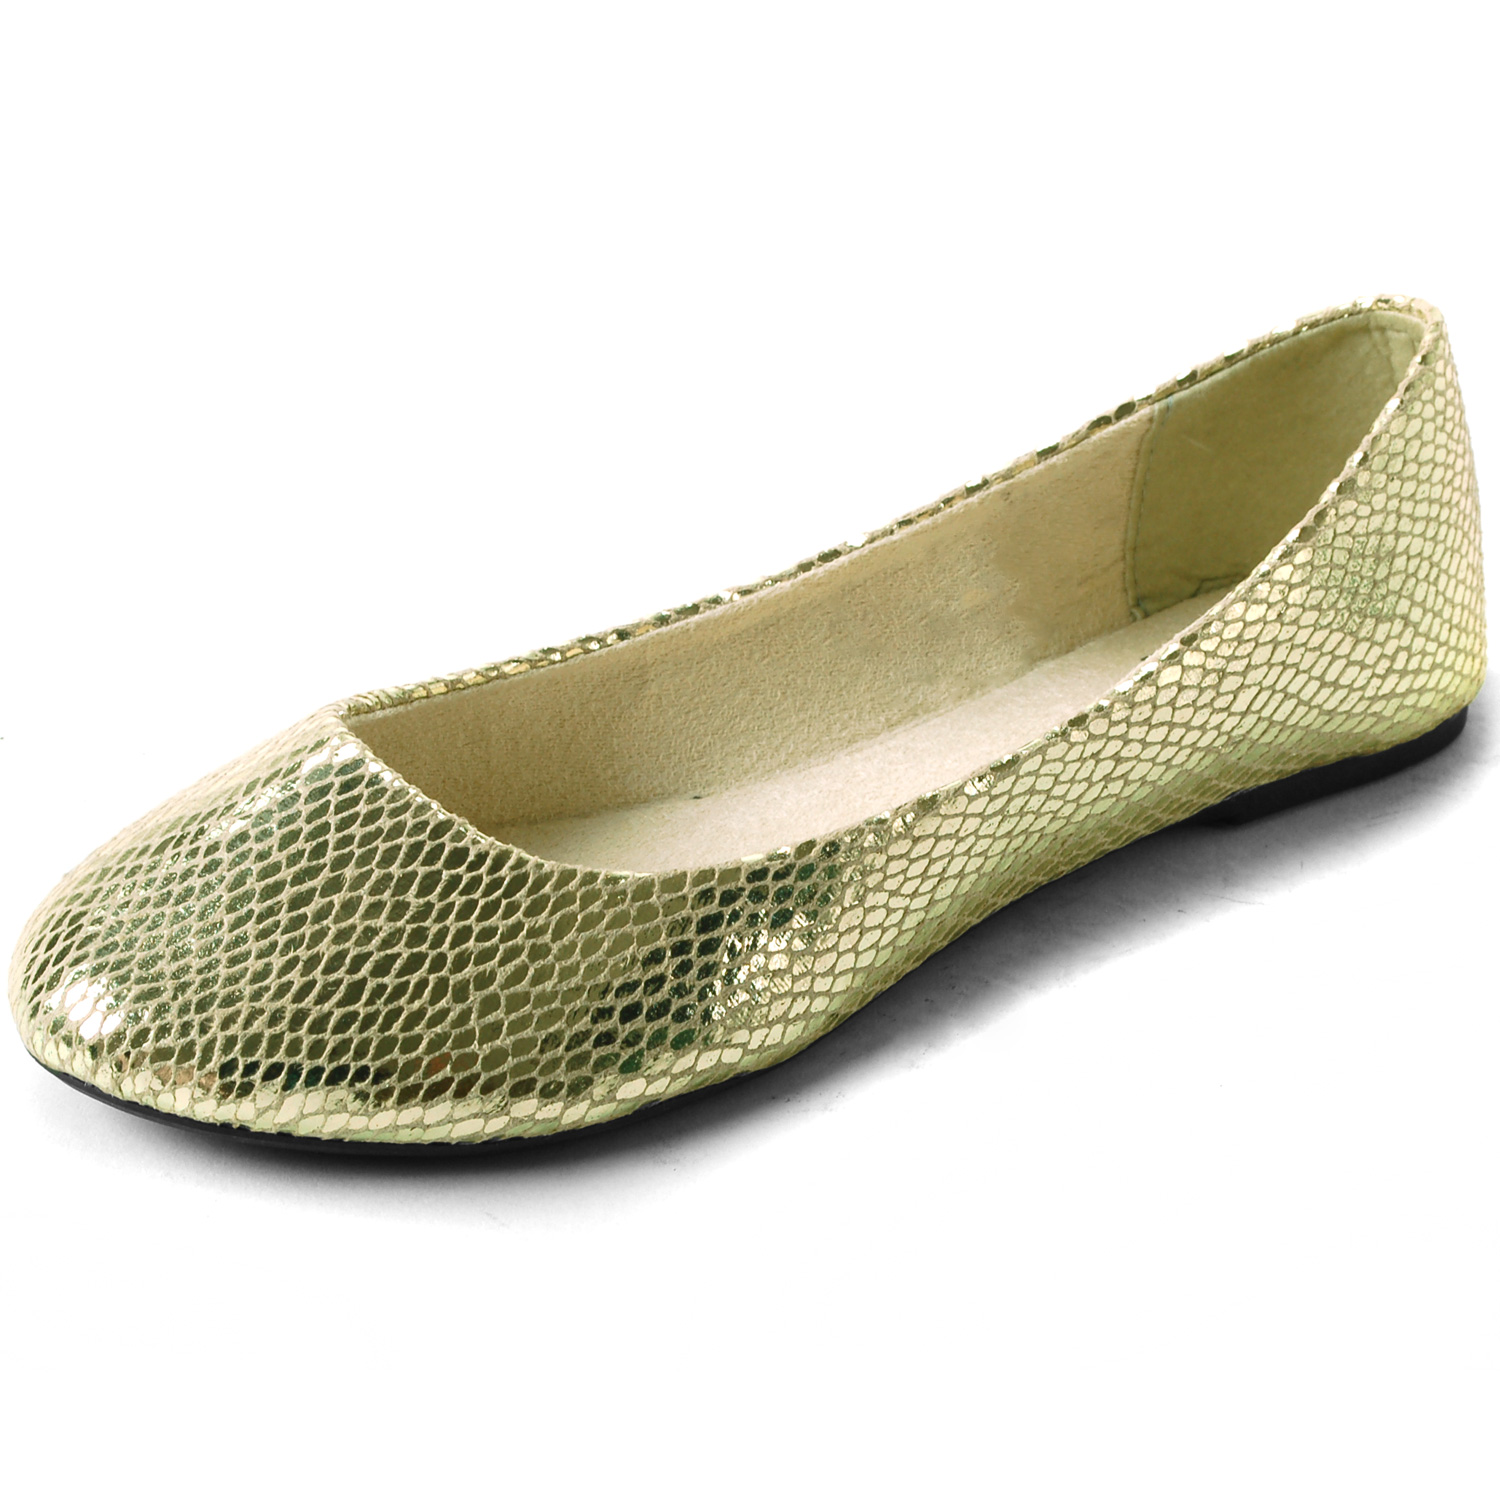 bb6fce7e7e313 Alpine Swiss - Alpine Swiss Pierina Womens Ballet Flats Leather Lined  Classic Slip On Shoes - Walmart.com